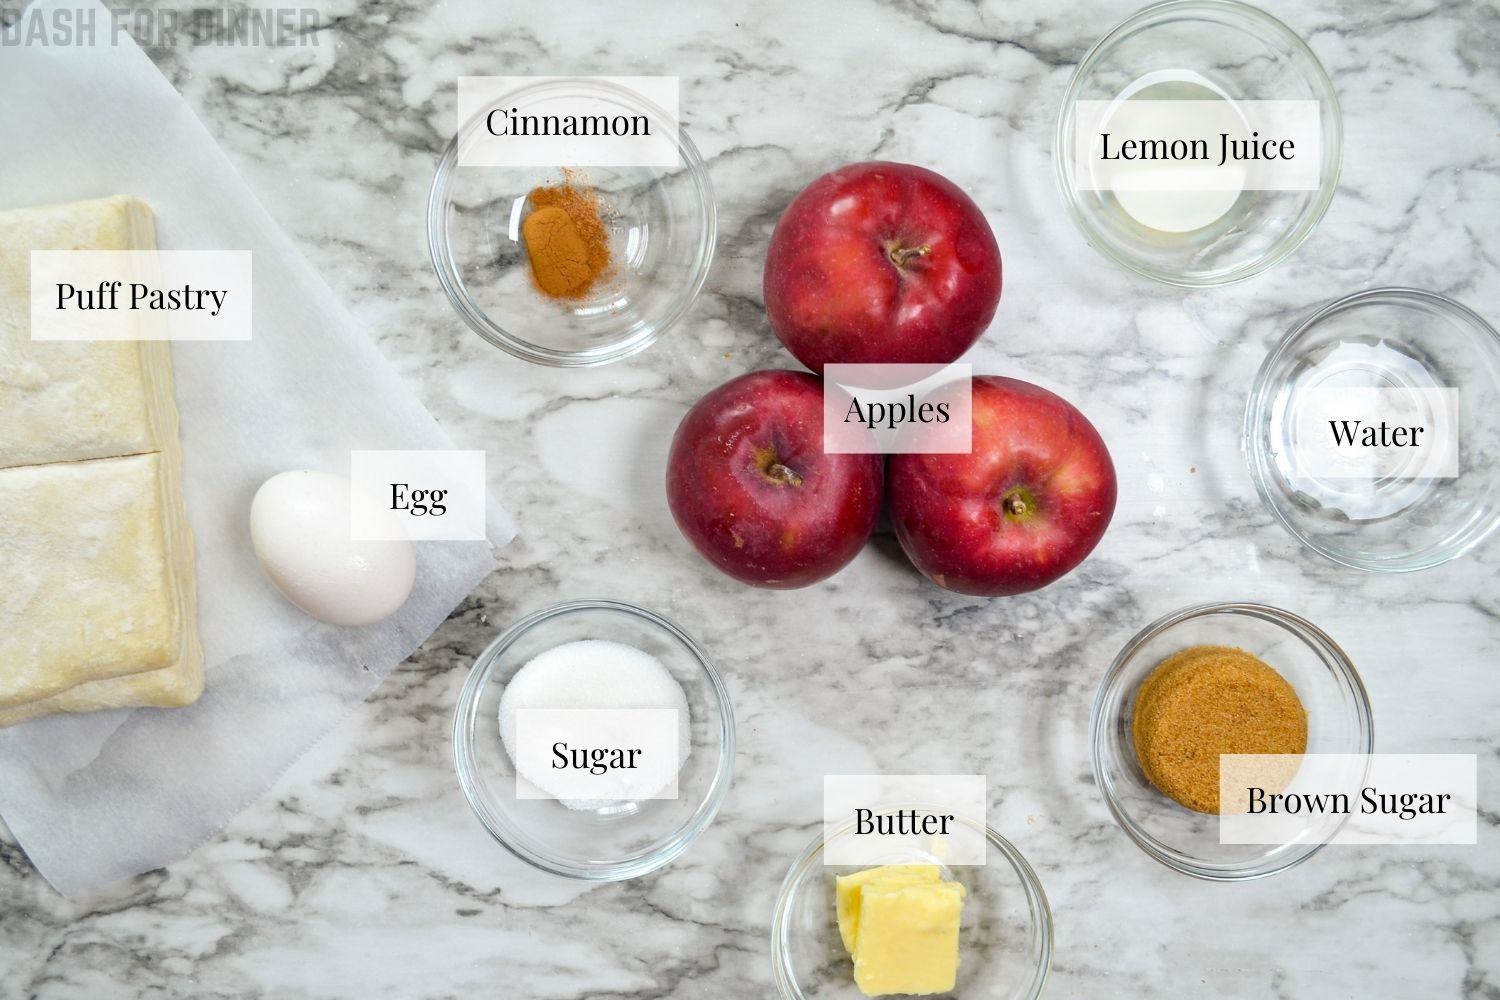 The ingredients needed to make apple turnovers in an air fryer